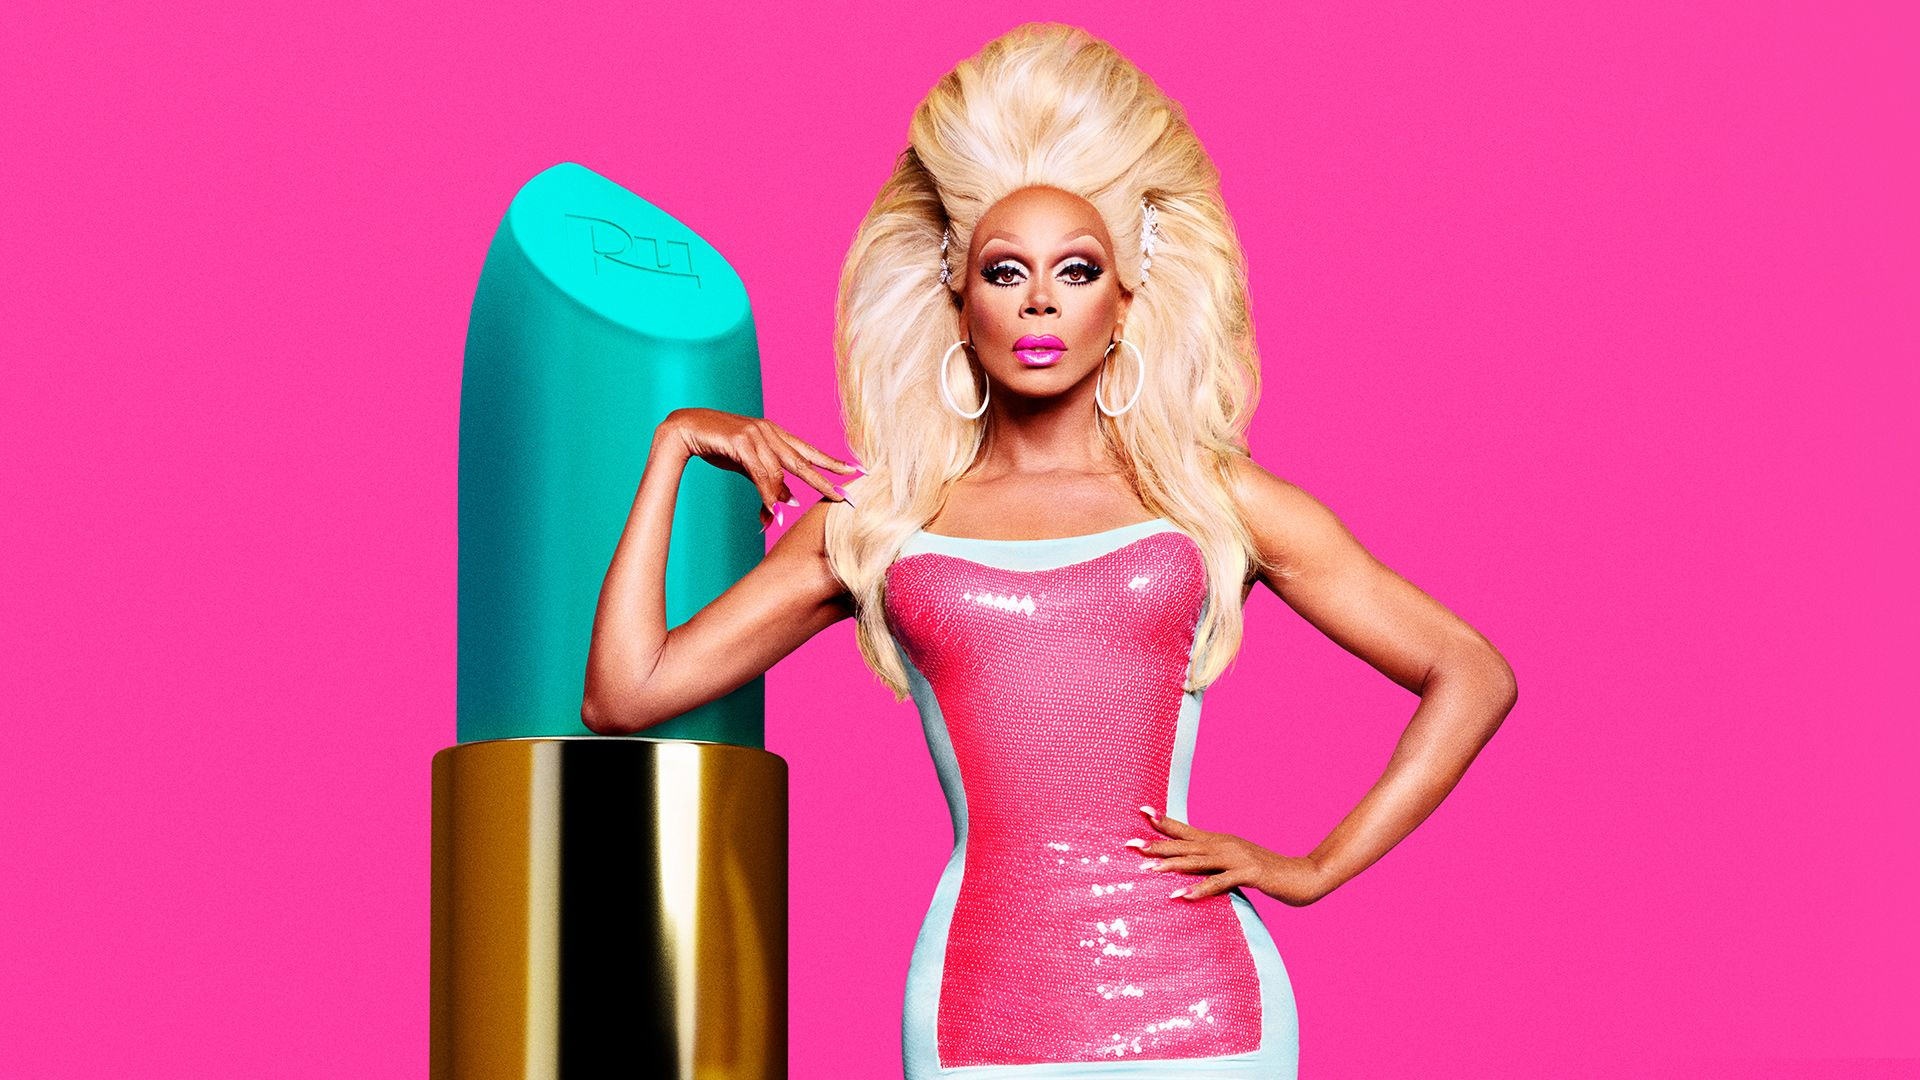 Get Out Tlc Tv Show Full Episodes tv schedule for rupaul's drag race   vh1 tv series schedule